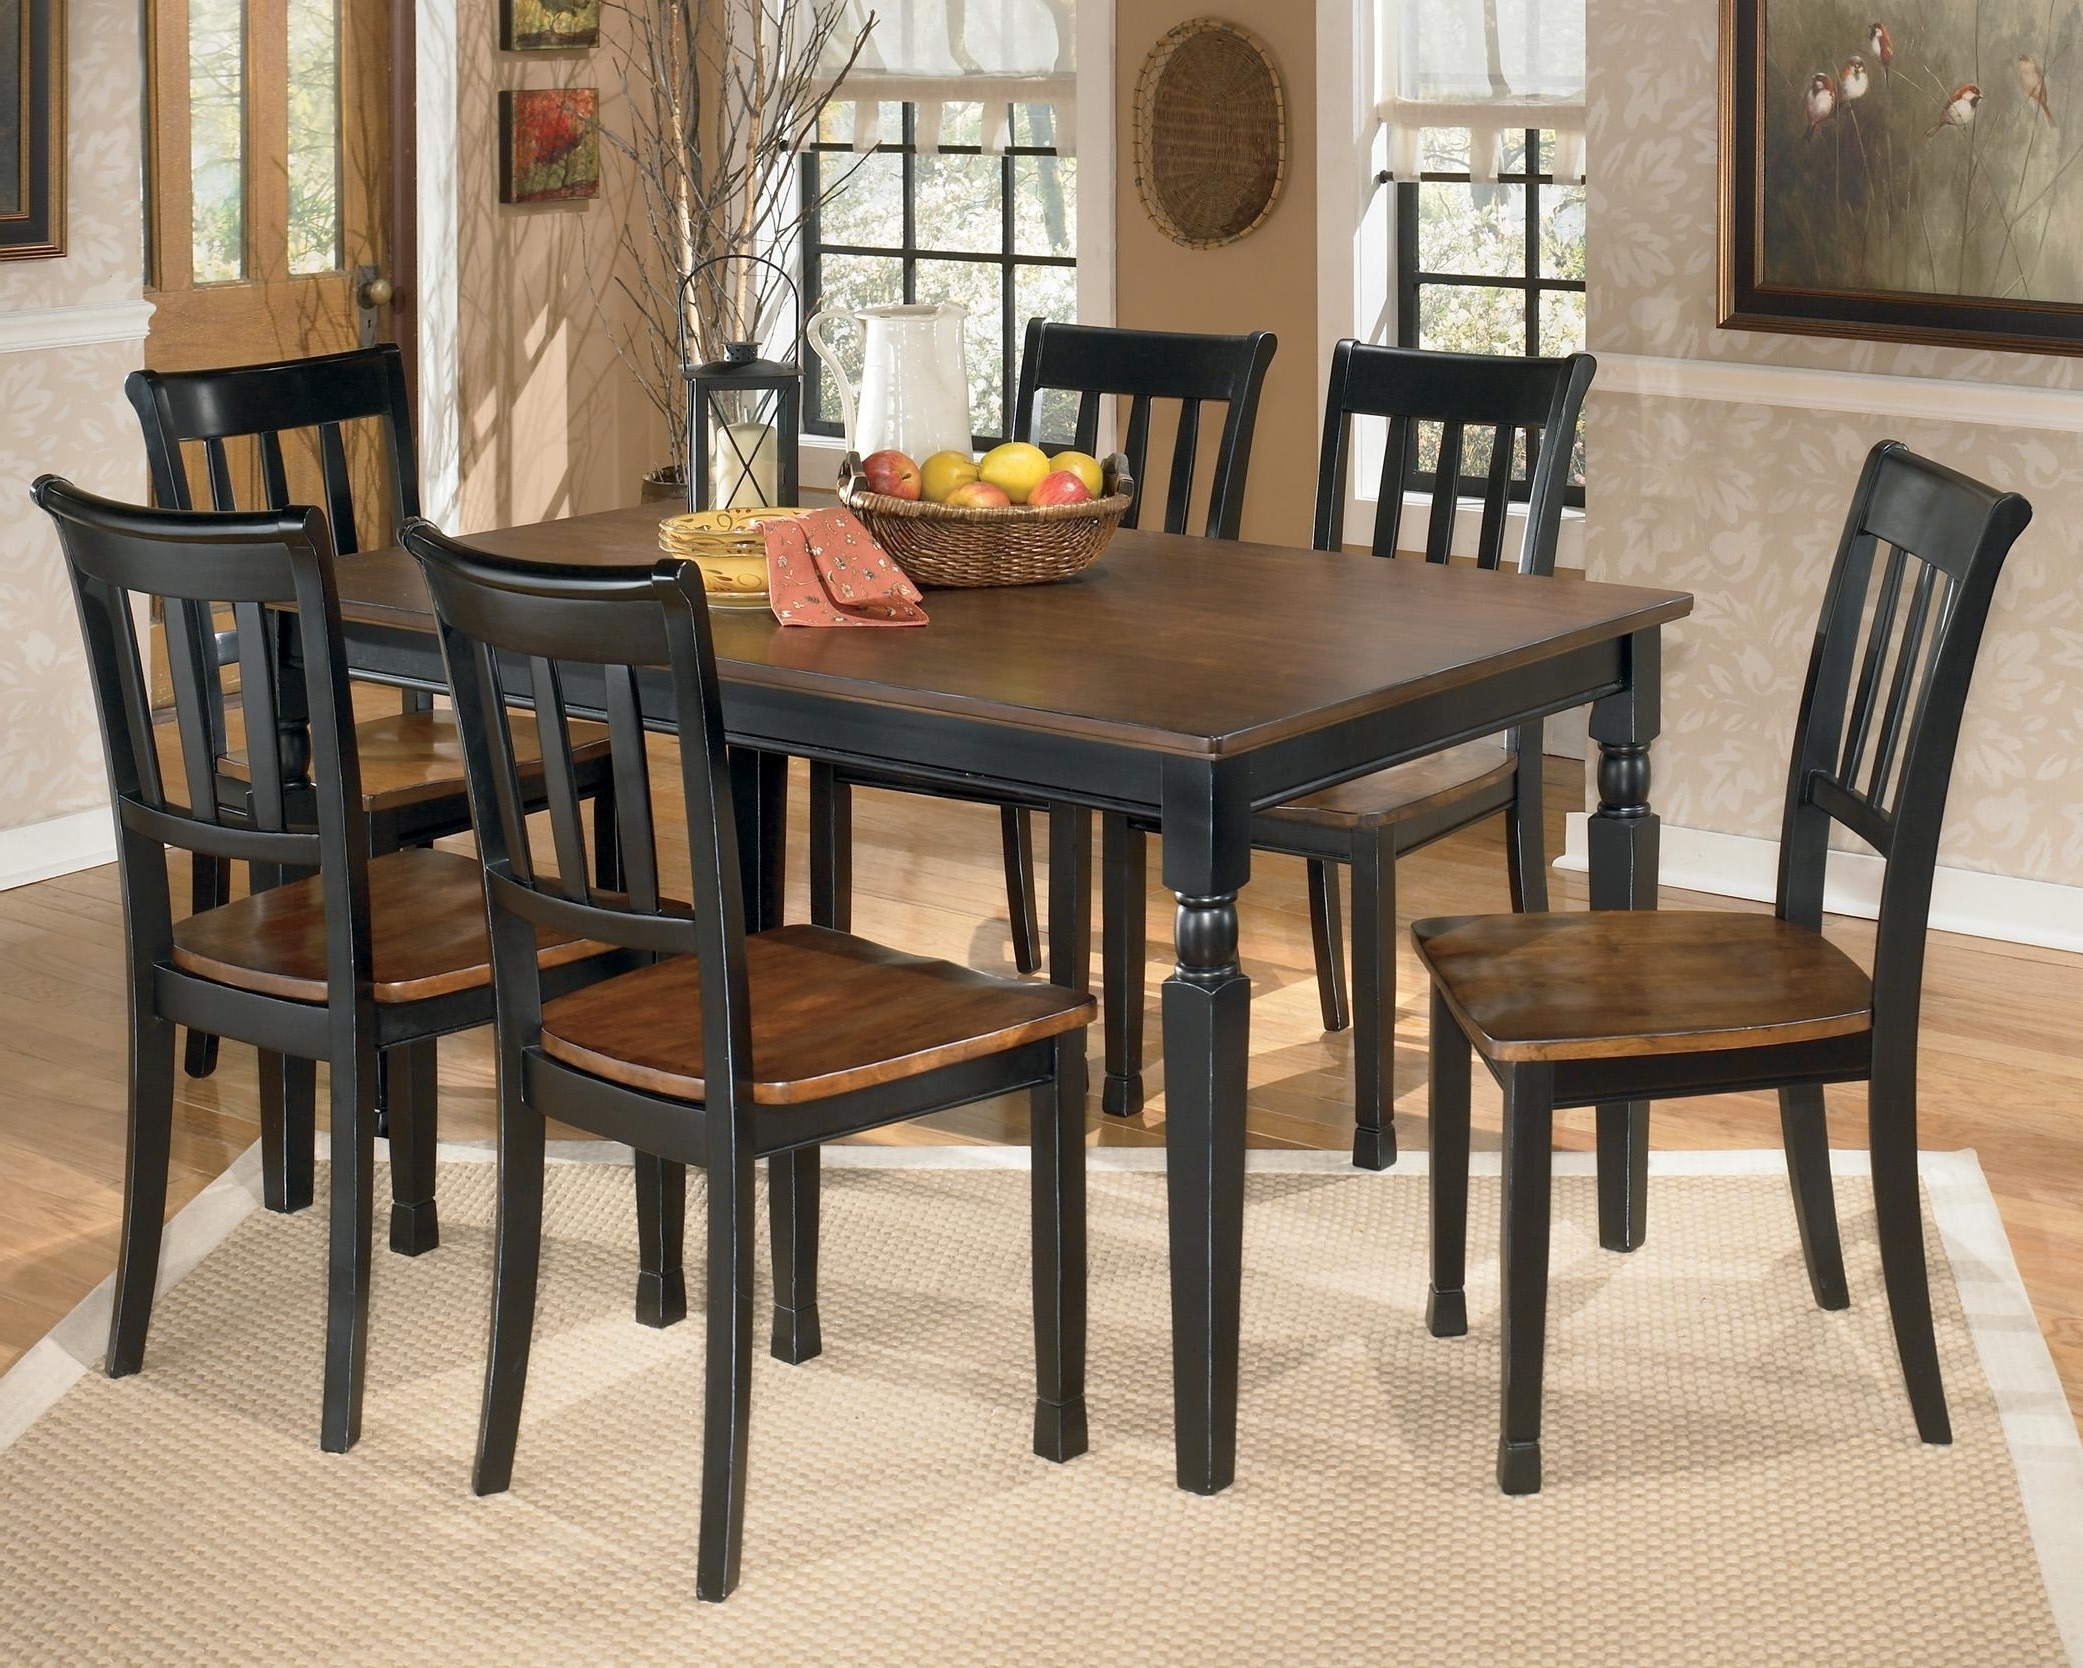 Signature Designashley Owingsville 7 Piece Rectangular Dining Regarding Well Liked Dining Tables With 6 Chairs (View 12 of 25)